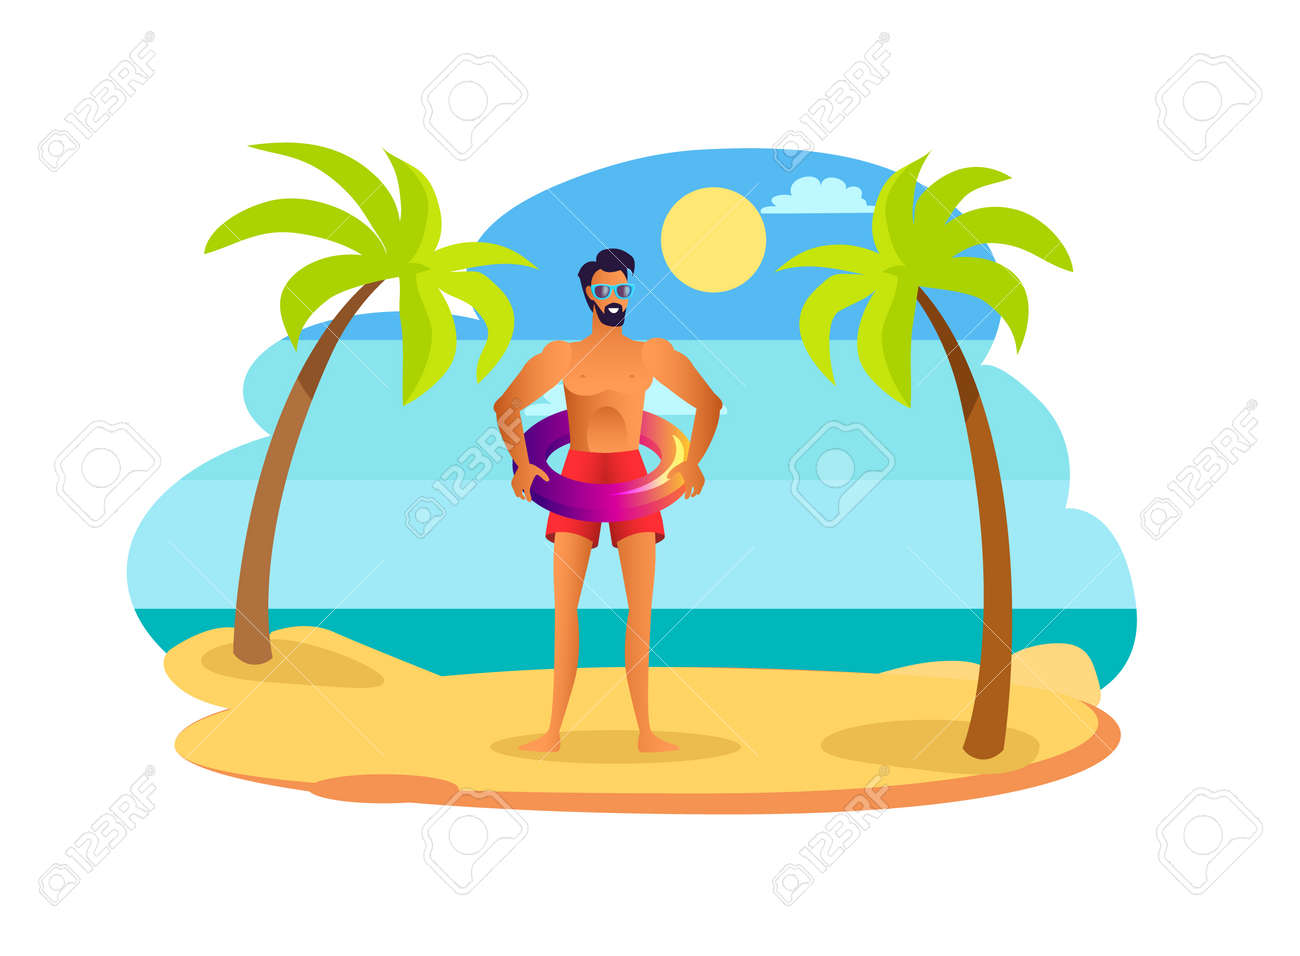 549cf591b4 Man in sunglasses and red swimming trunks with shiny lifebuoy. Handsome  suntanned guy wears swimwear